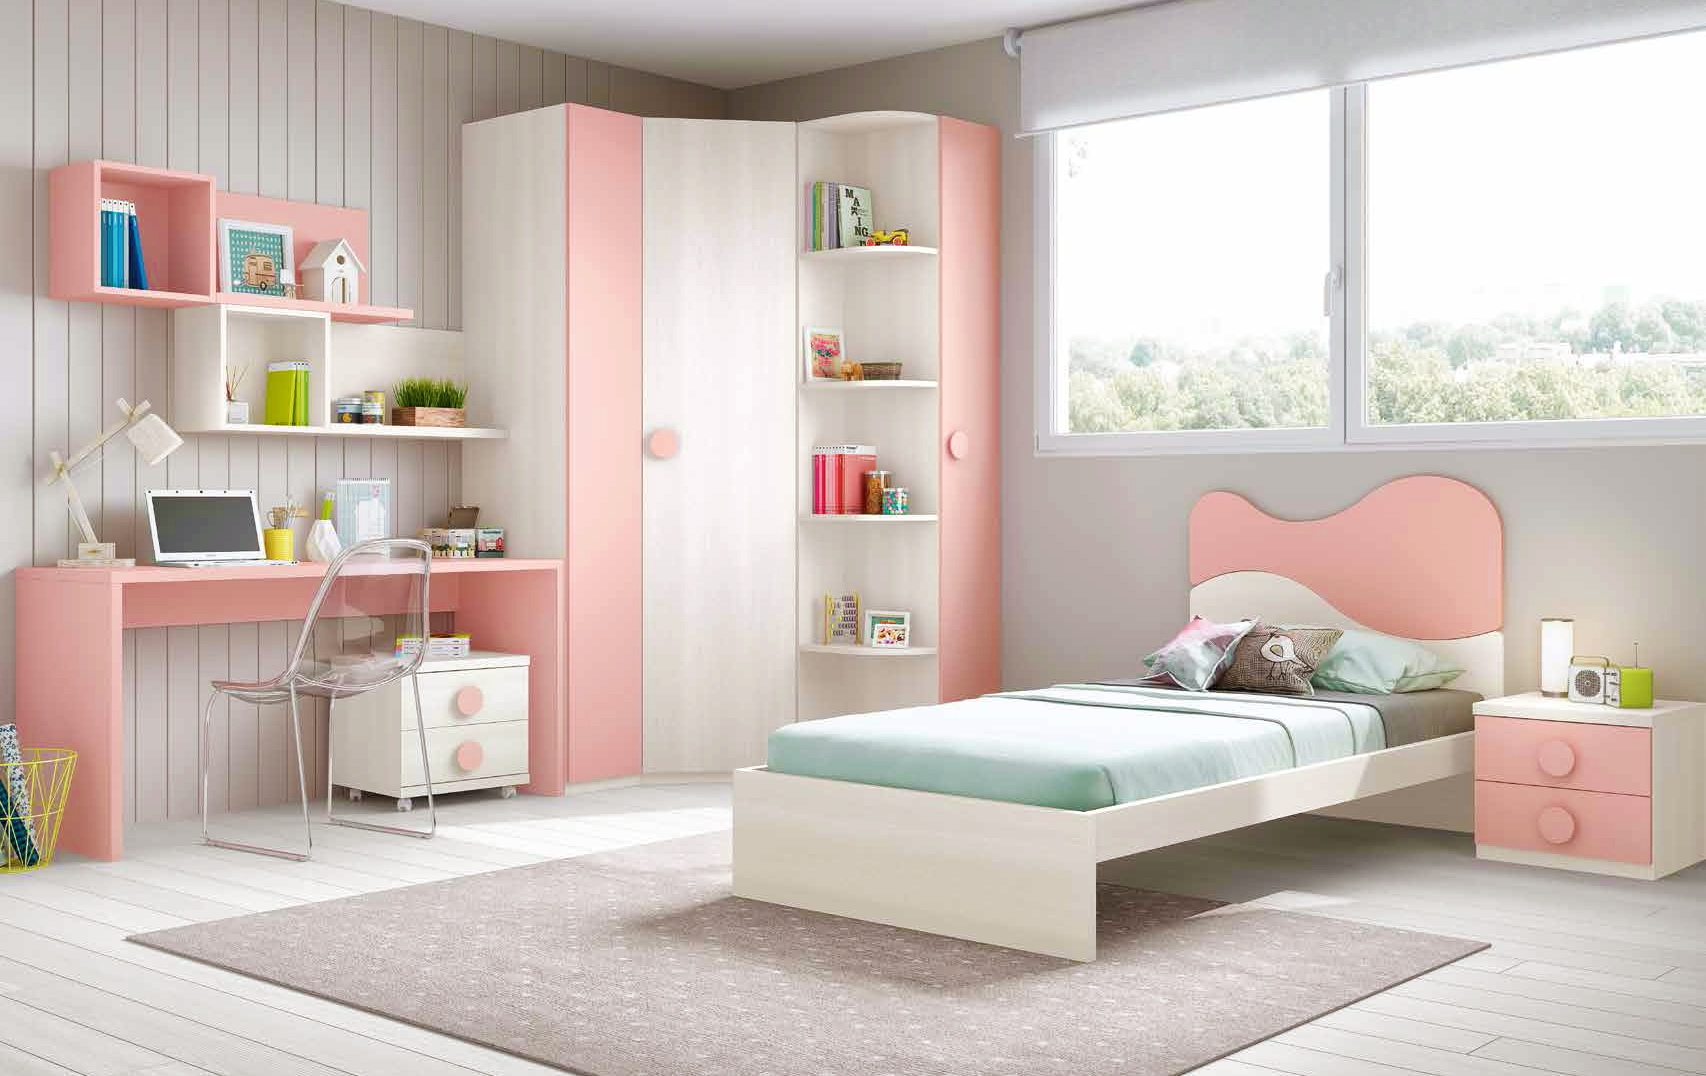 Emejing chambre fille images design trends 2017 for Lit chambre fille